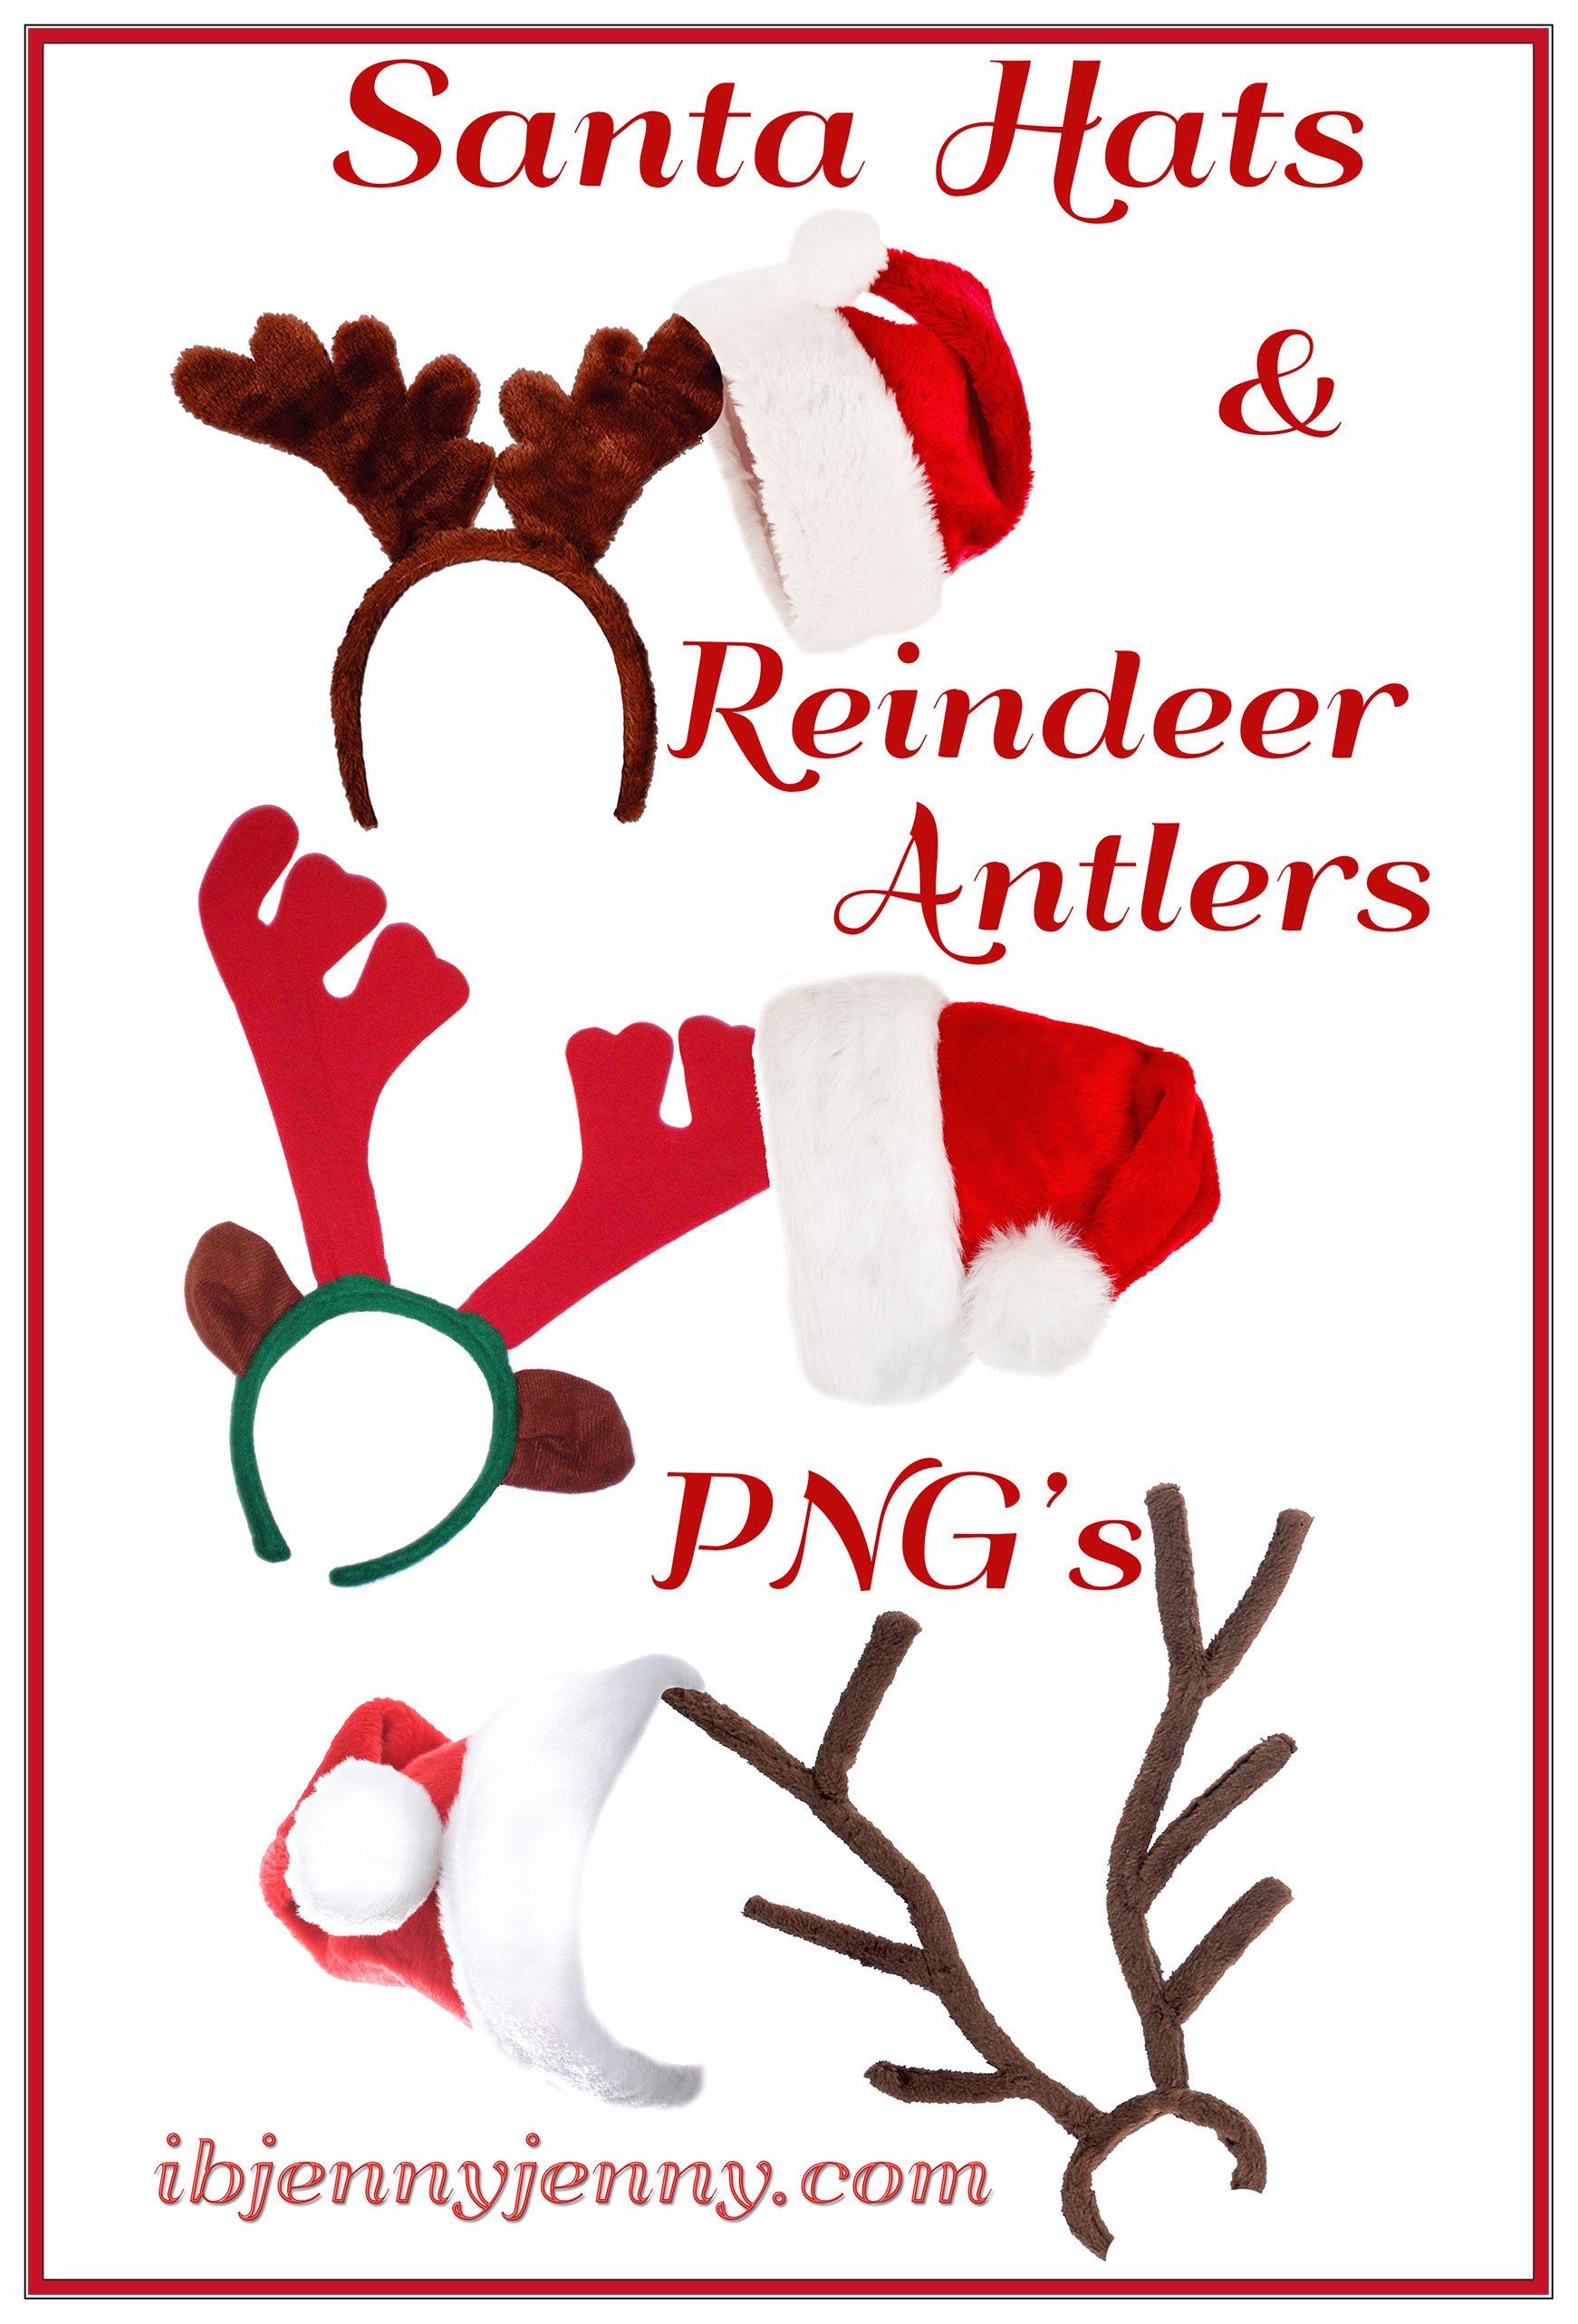 Santa Hats and Reindeer Antlers PNG's by ibjennyjenny on DeviantArt